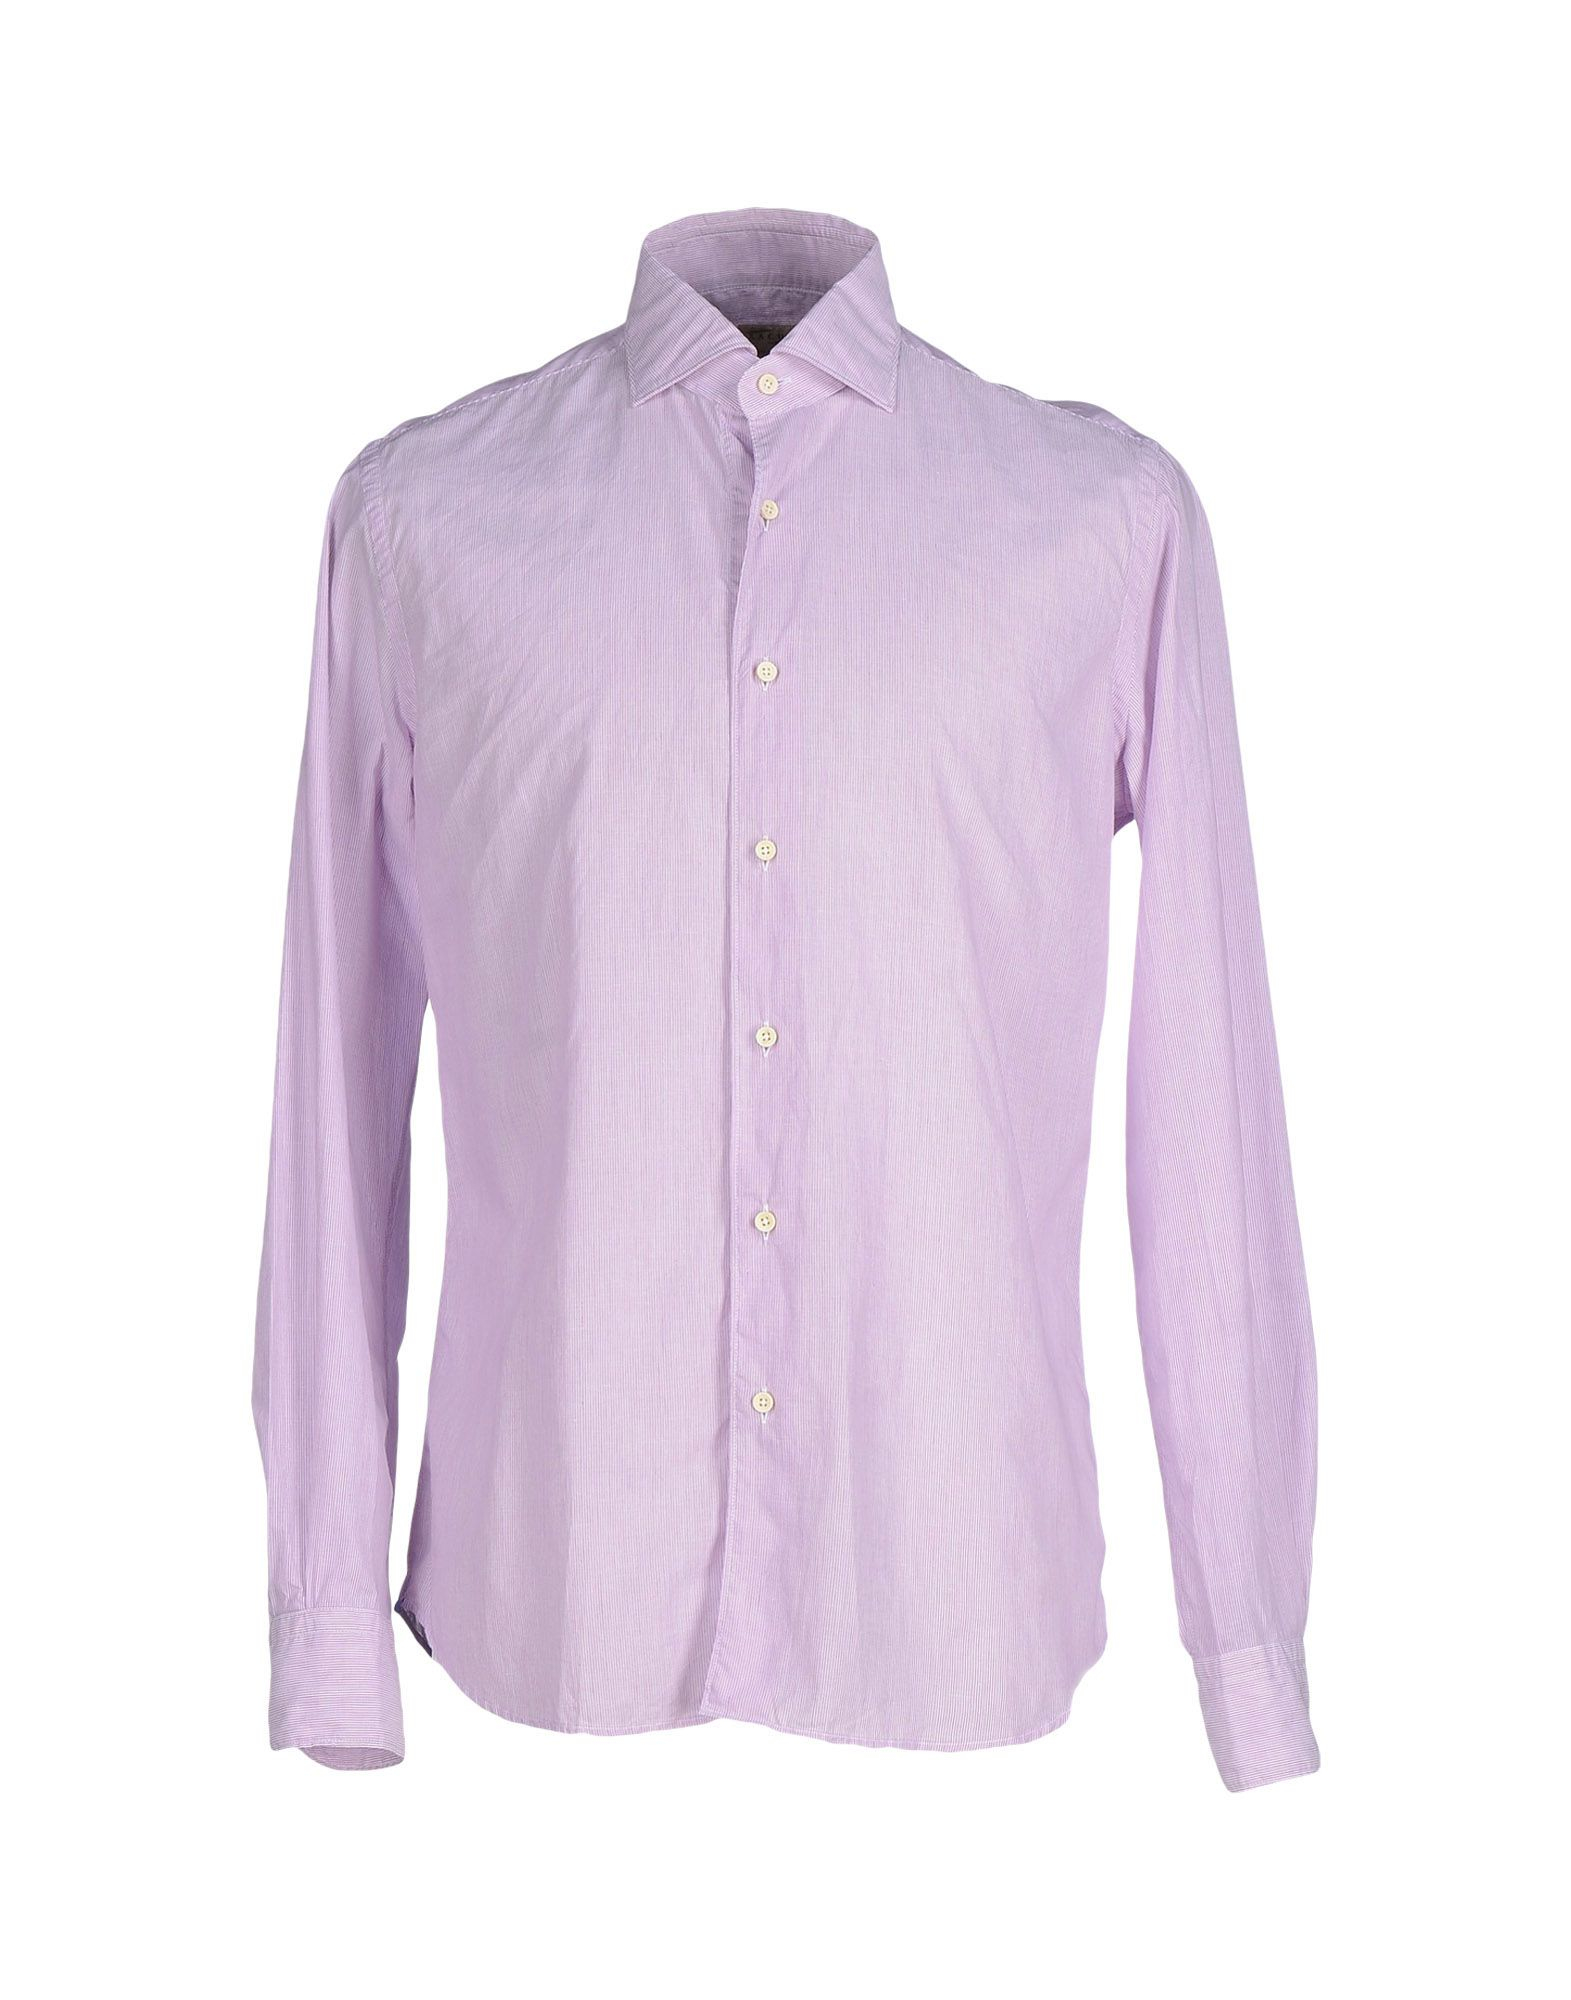 Xacus shirt in purple for men light purple save 60 lyst Light purple dress shirt men